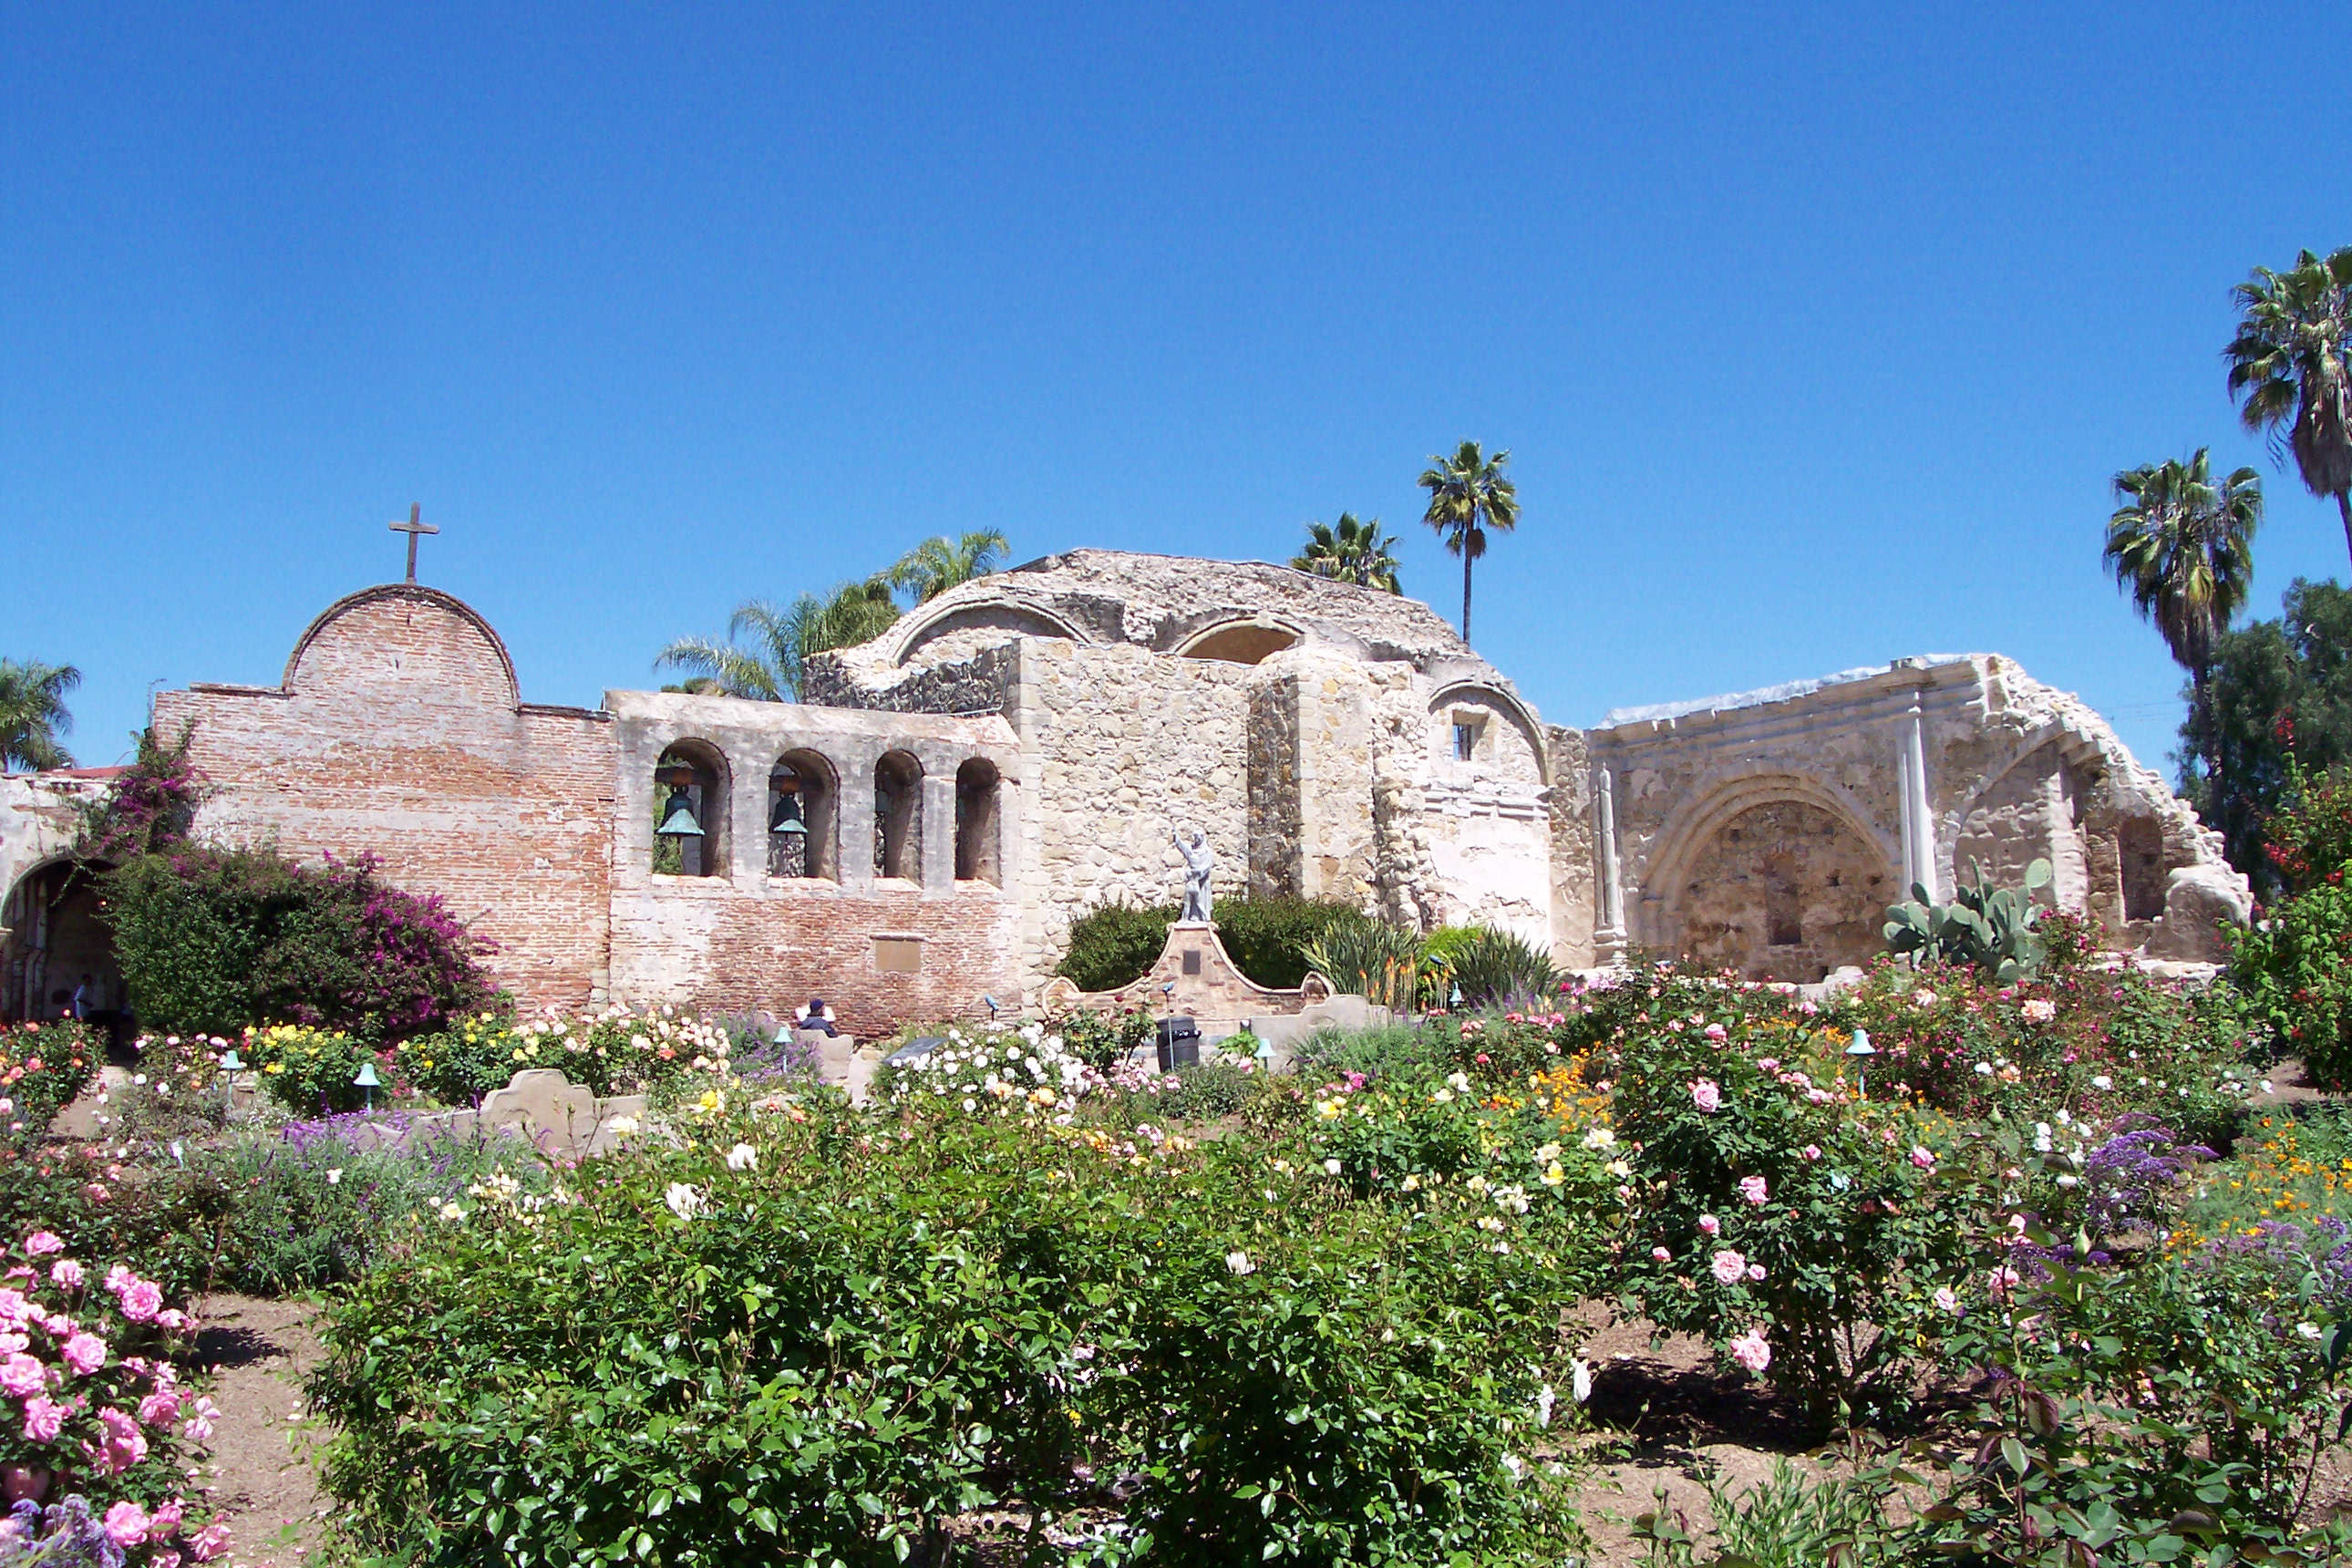 Mission San Juan Capistrano. The Mission chapel, though enlarged, is still original--and is the only one surviving in which the original founder of the California missions, Father Junipero Serra, is known to have celebrated Mass.